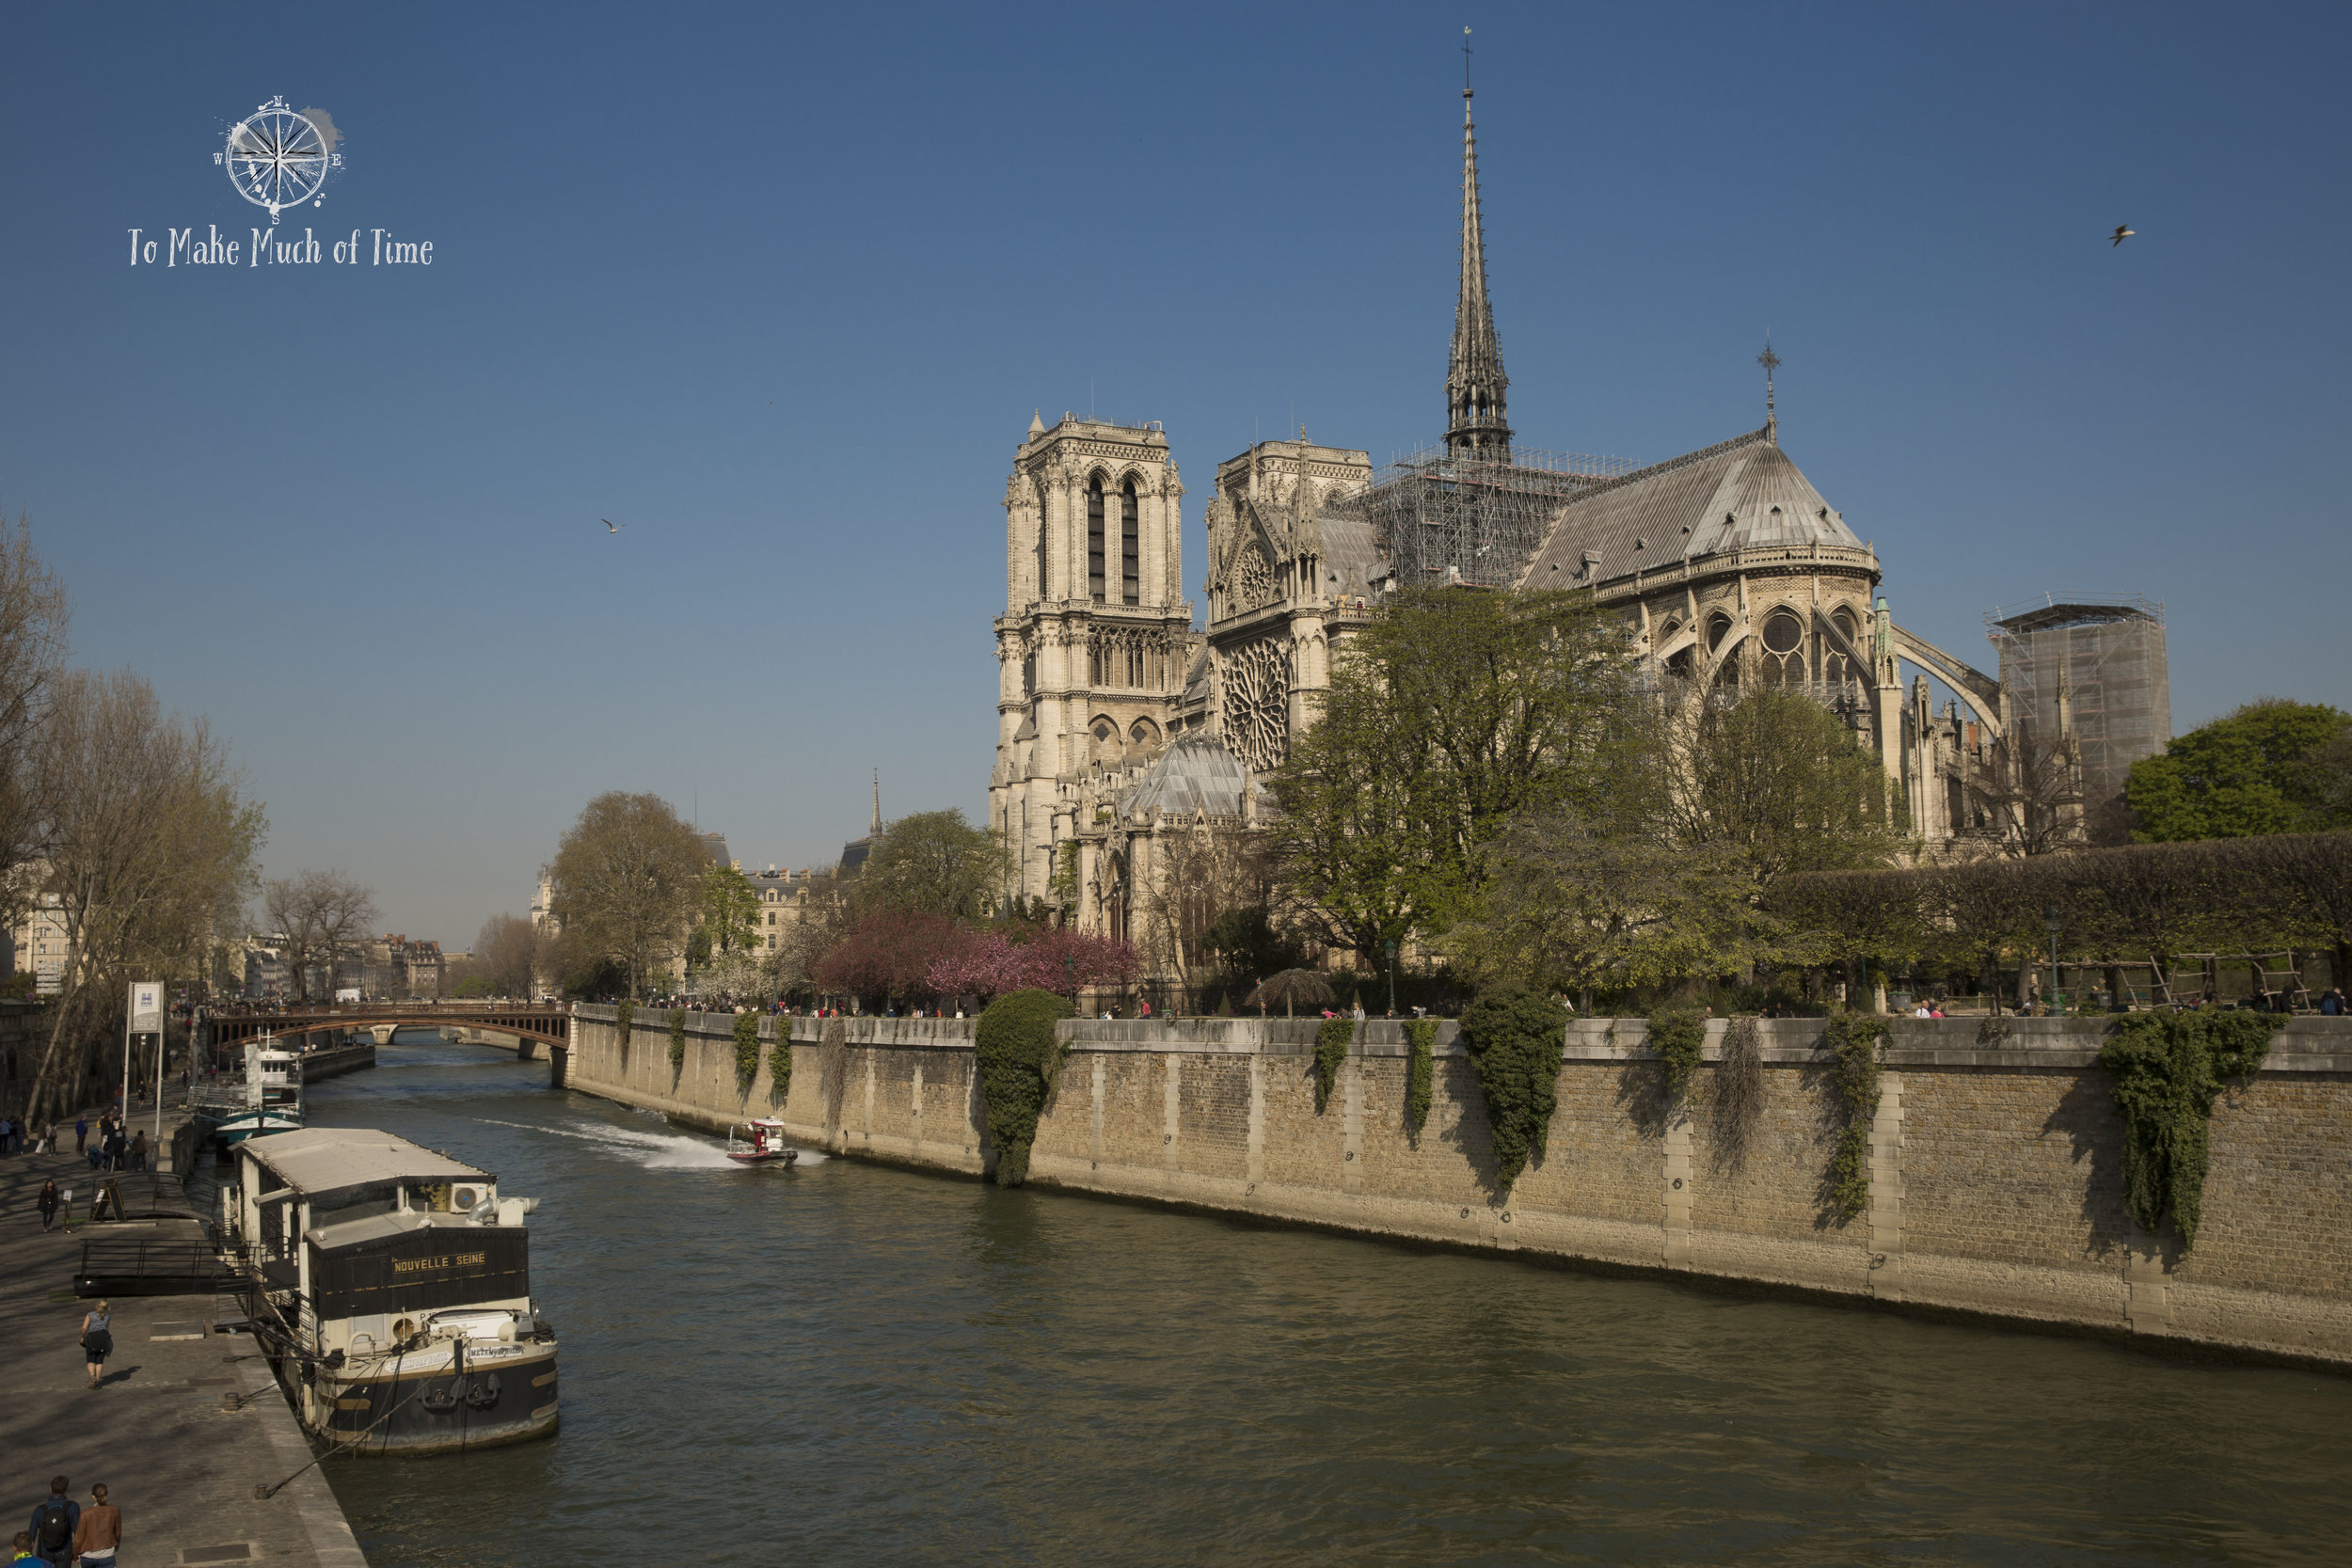 Interested in our trip to France? - Click the button to explore our adventure!